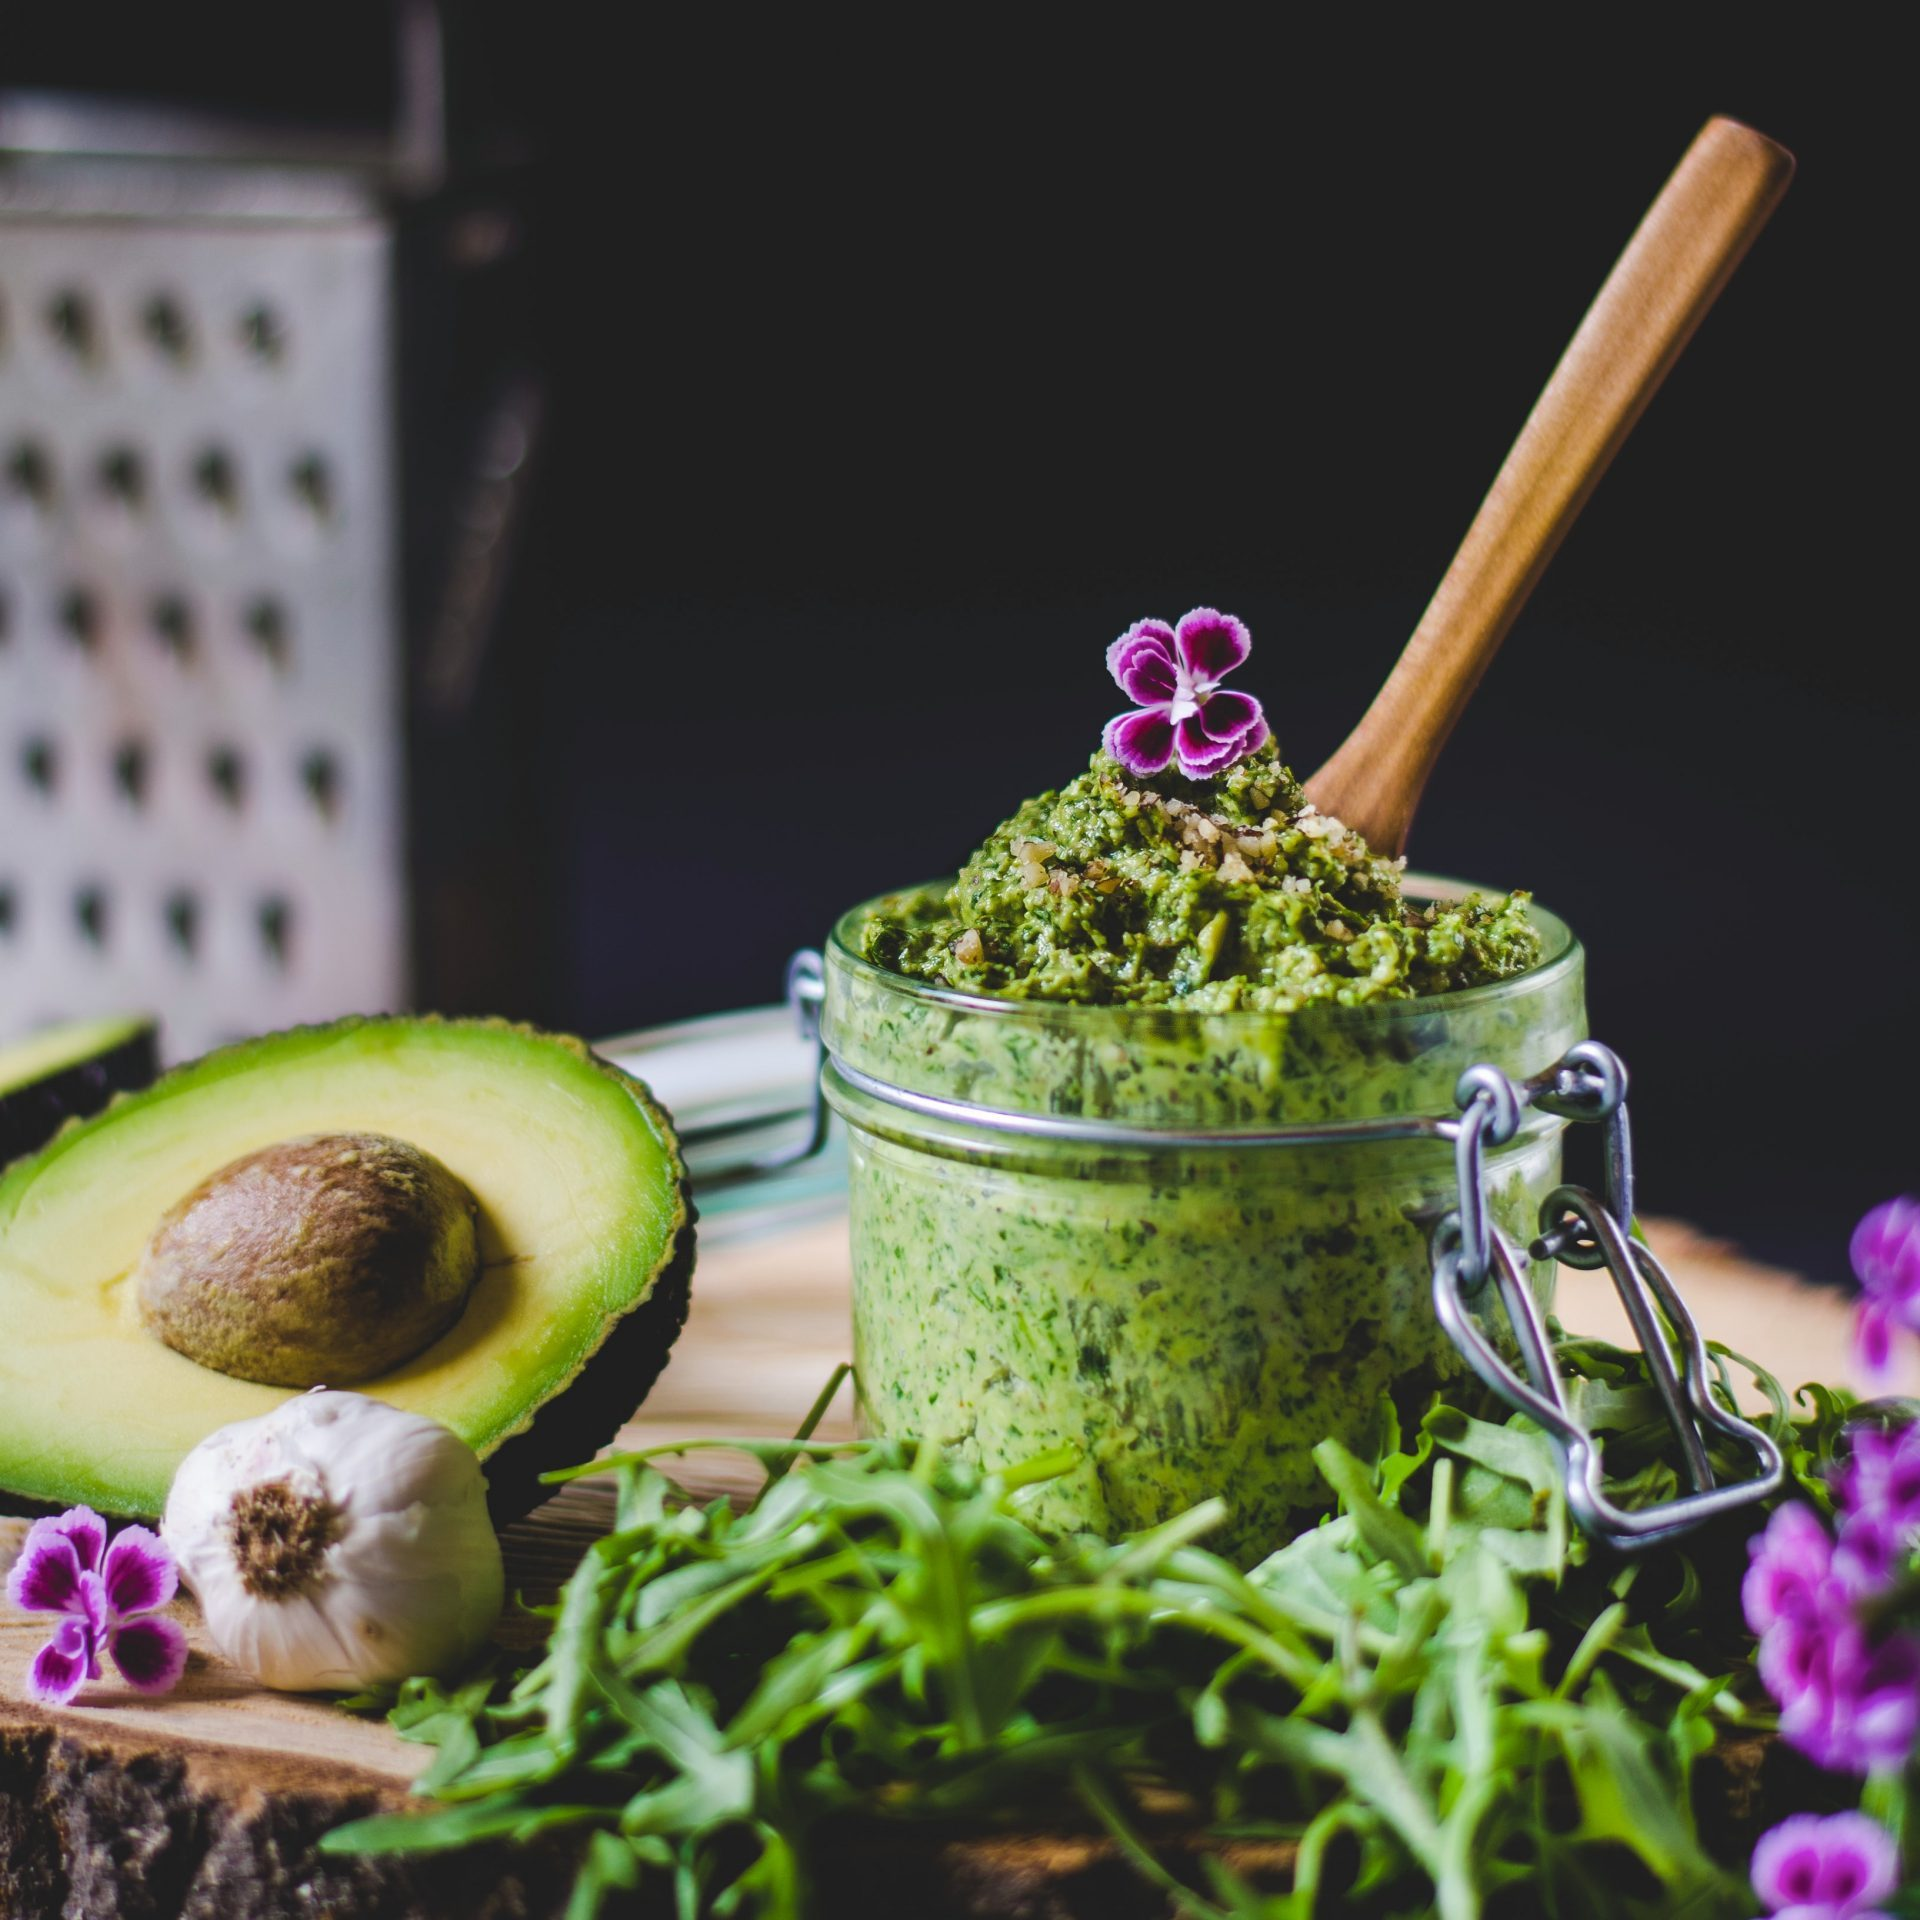 Green pesto in a glass with a wooden spoon in it. Rocket, avocado and some garlic lying next to it.